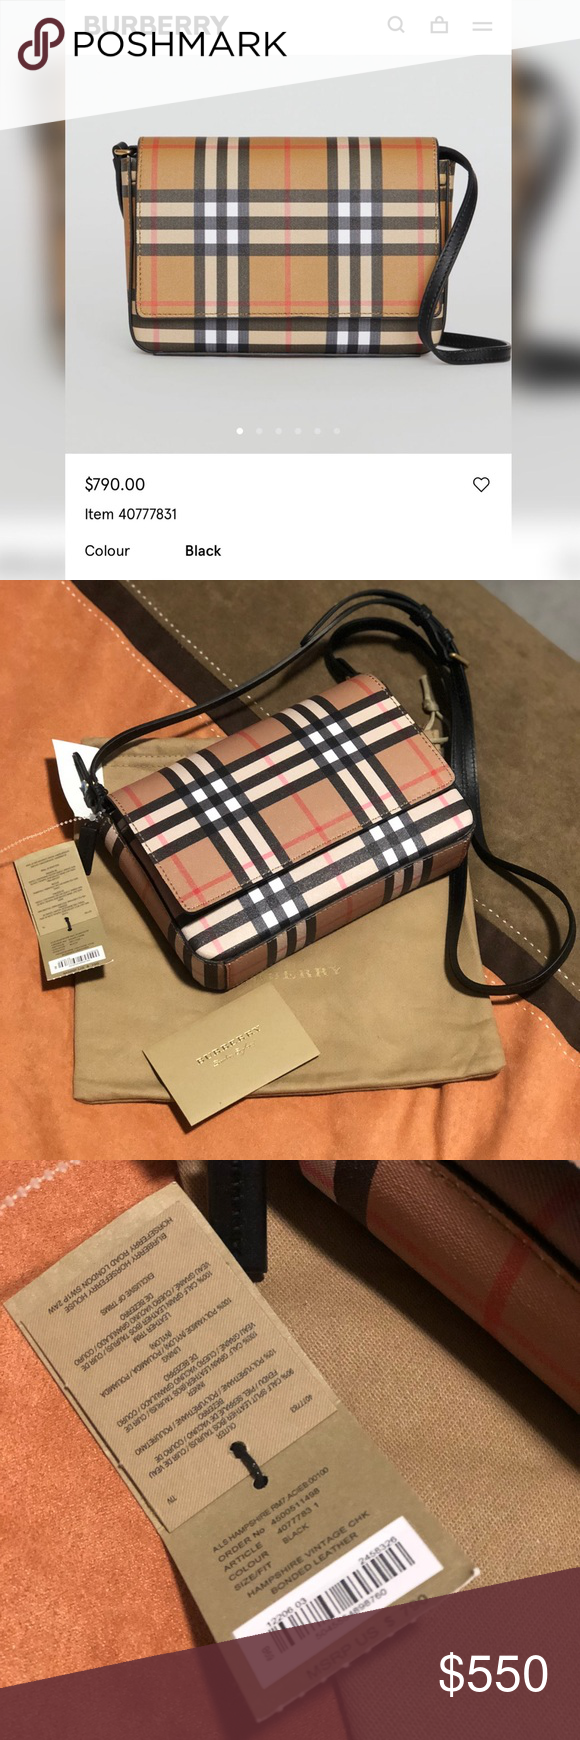 7c19721dd7 Burberry hampshire WOC Authentic and brand new Burberry hampshire vintage  check bonded leather crossbody Bag retails